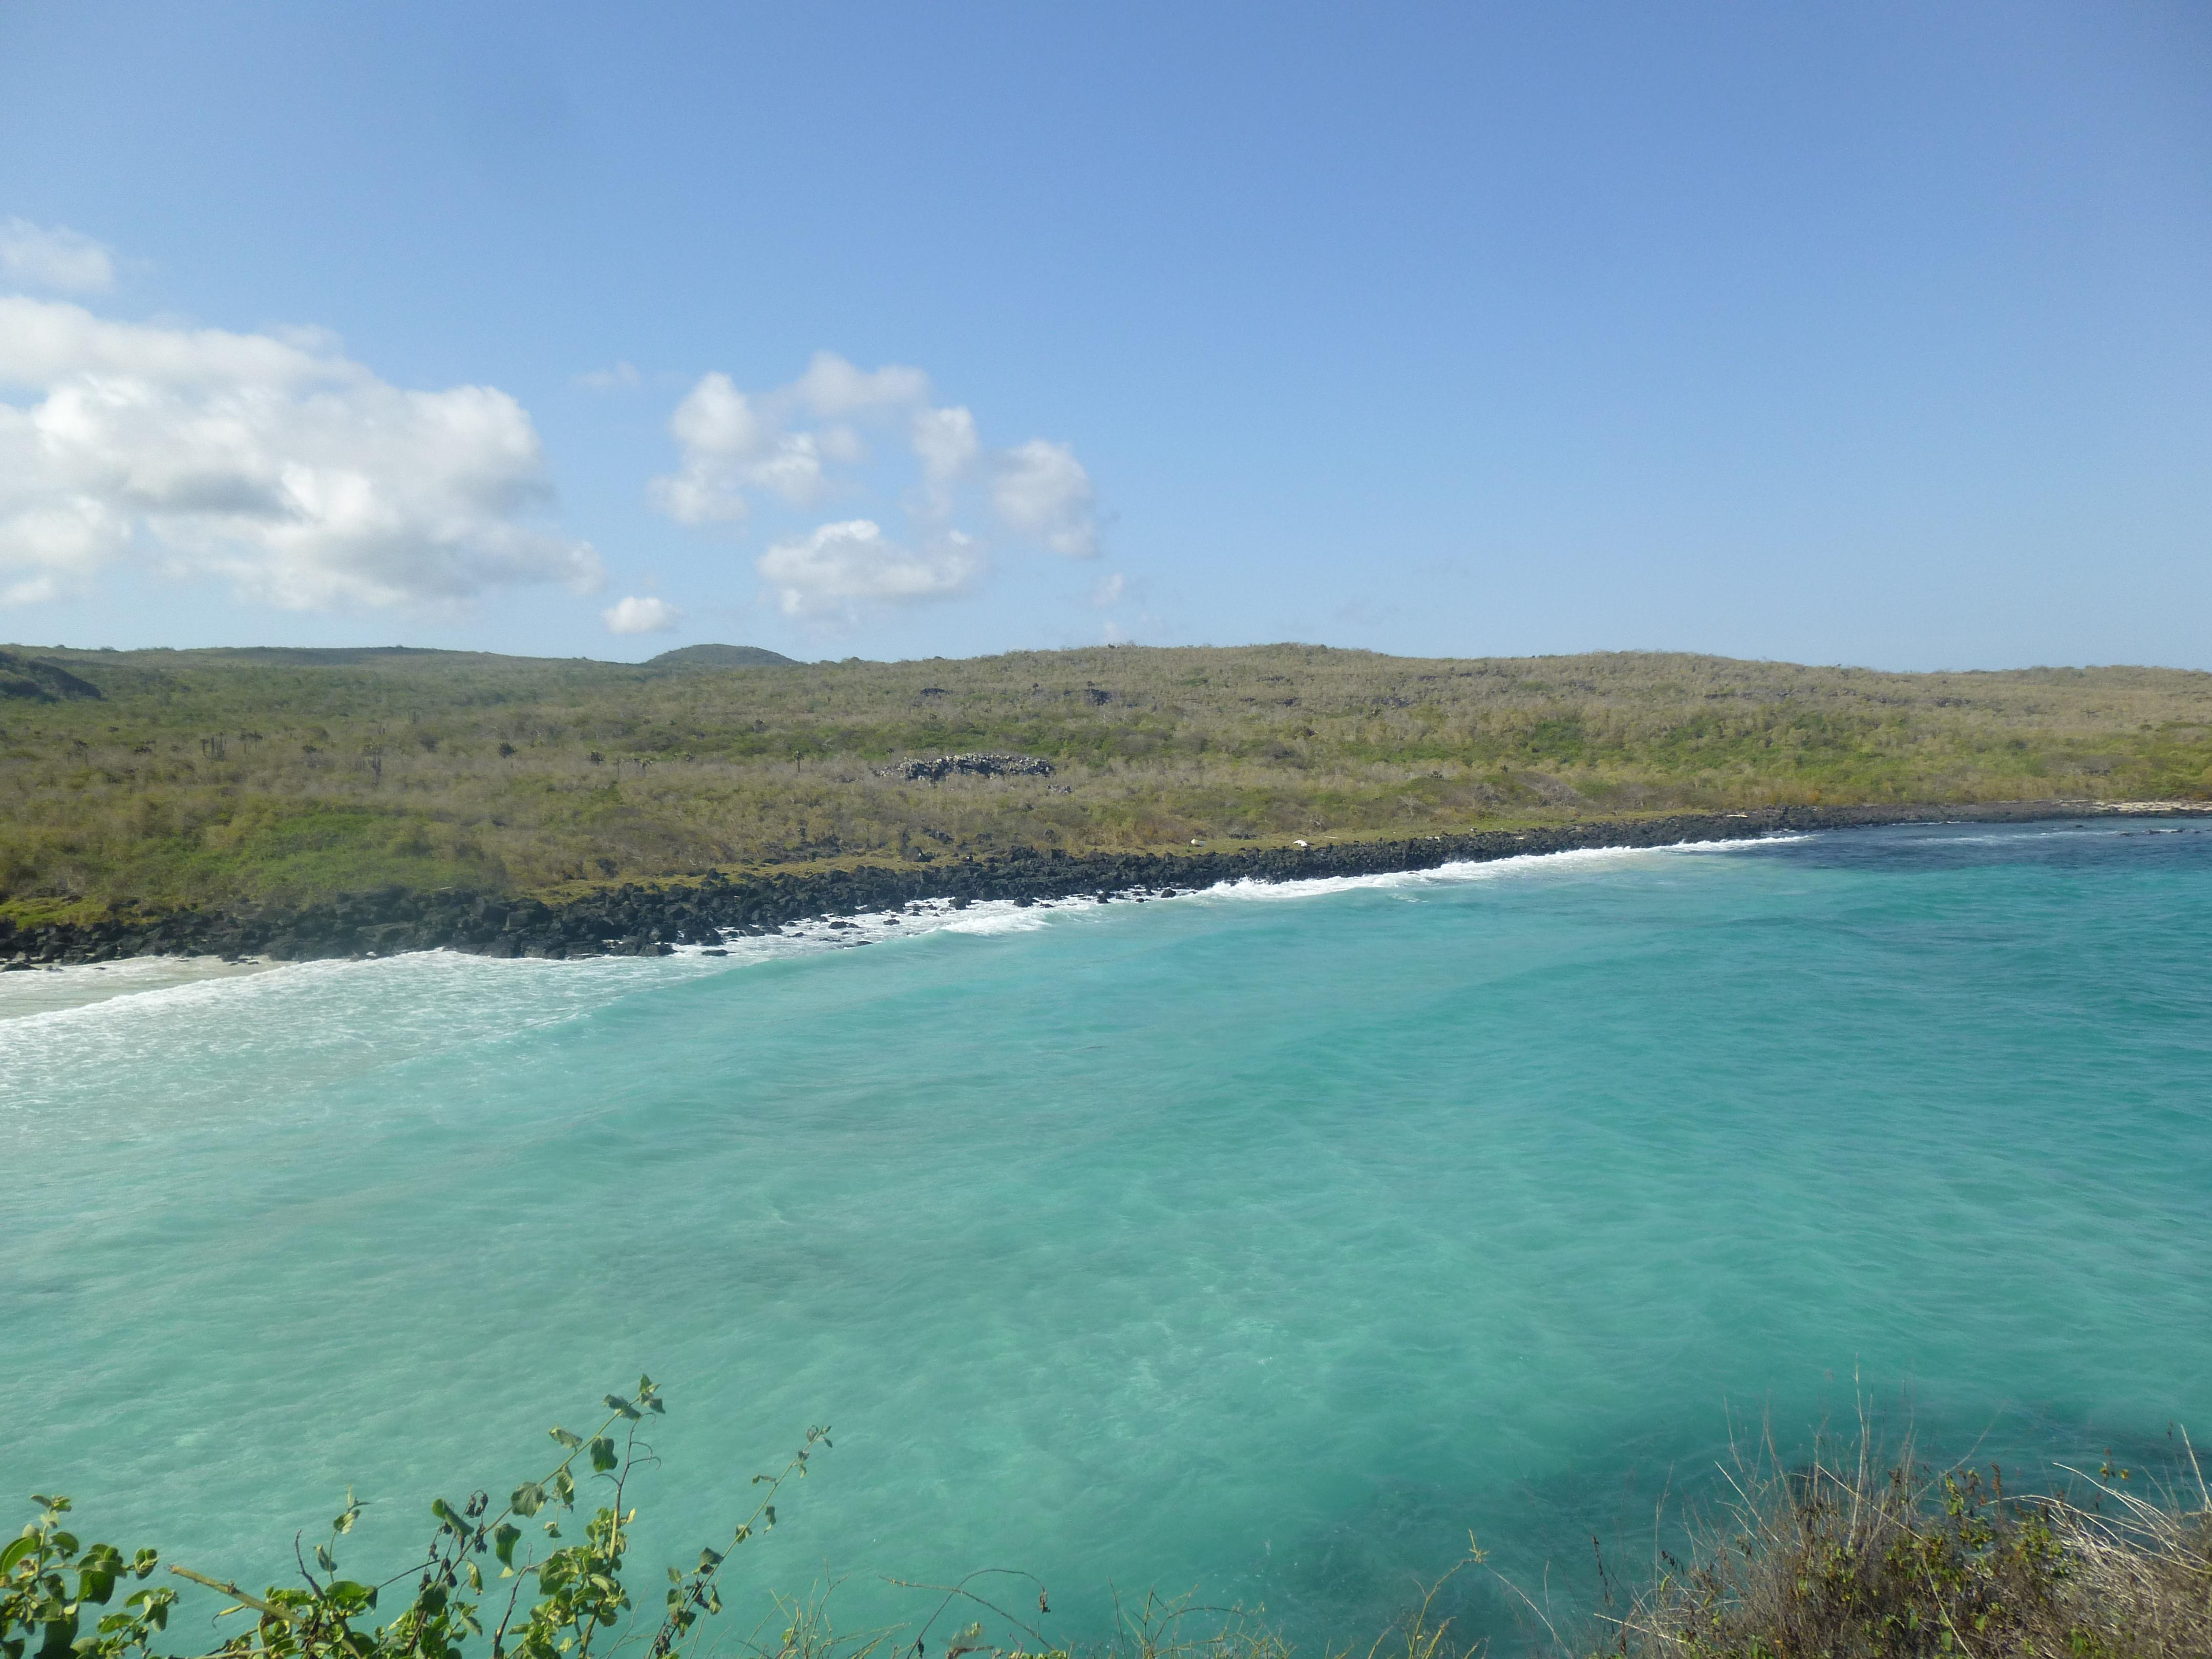 LAST FULL DAY 042 - Budget Guide To San Cristobal Island, Galápagos